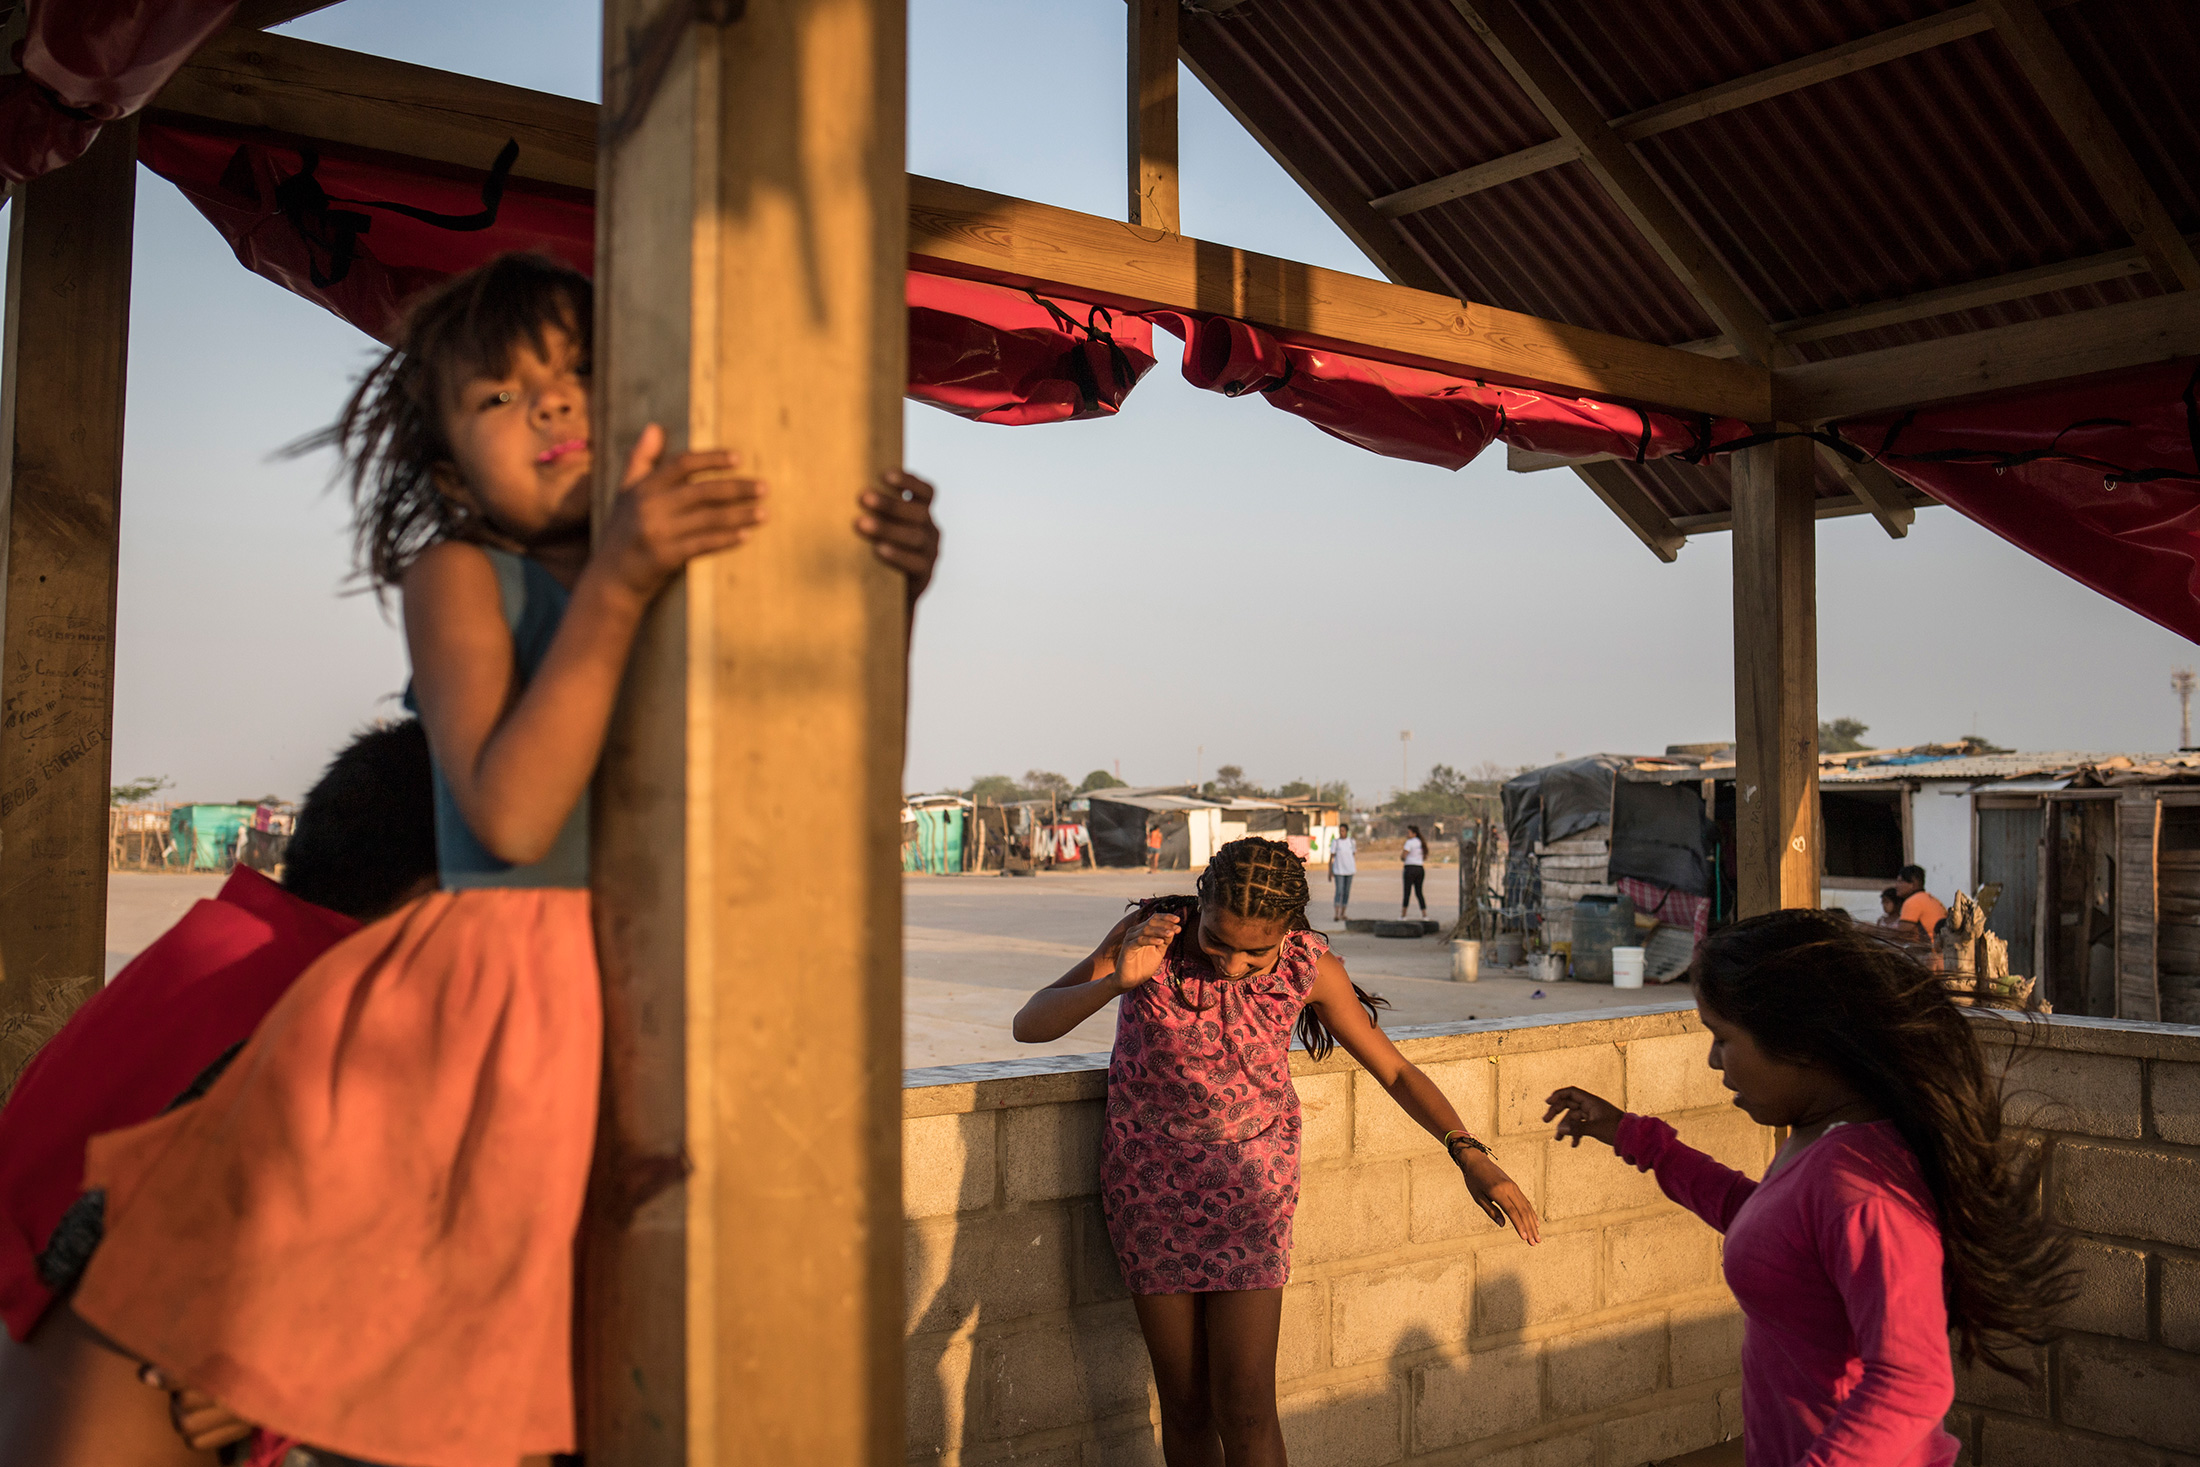 Children play in the La Pista migrant settlement, where Gomez often works with families.